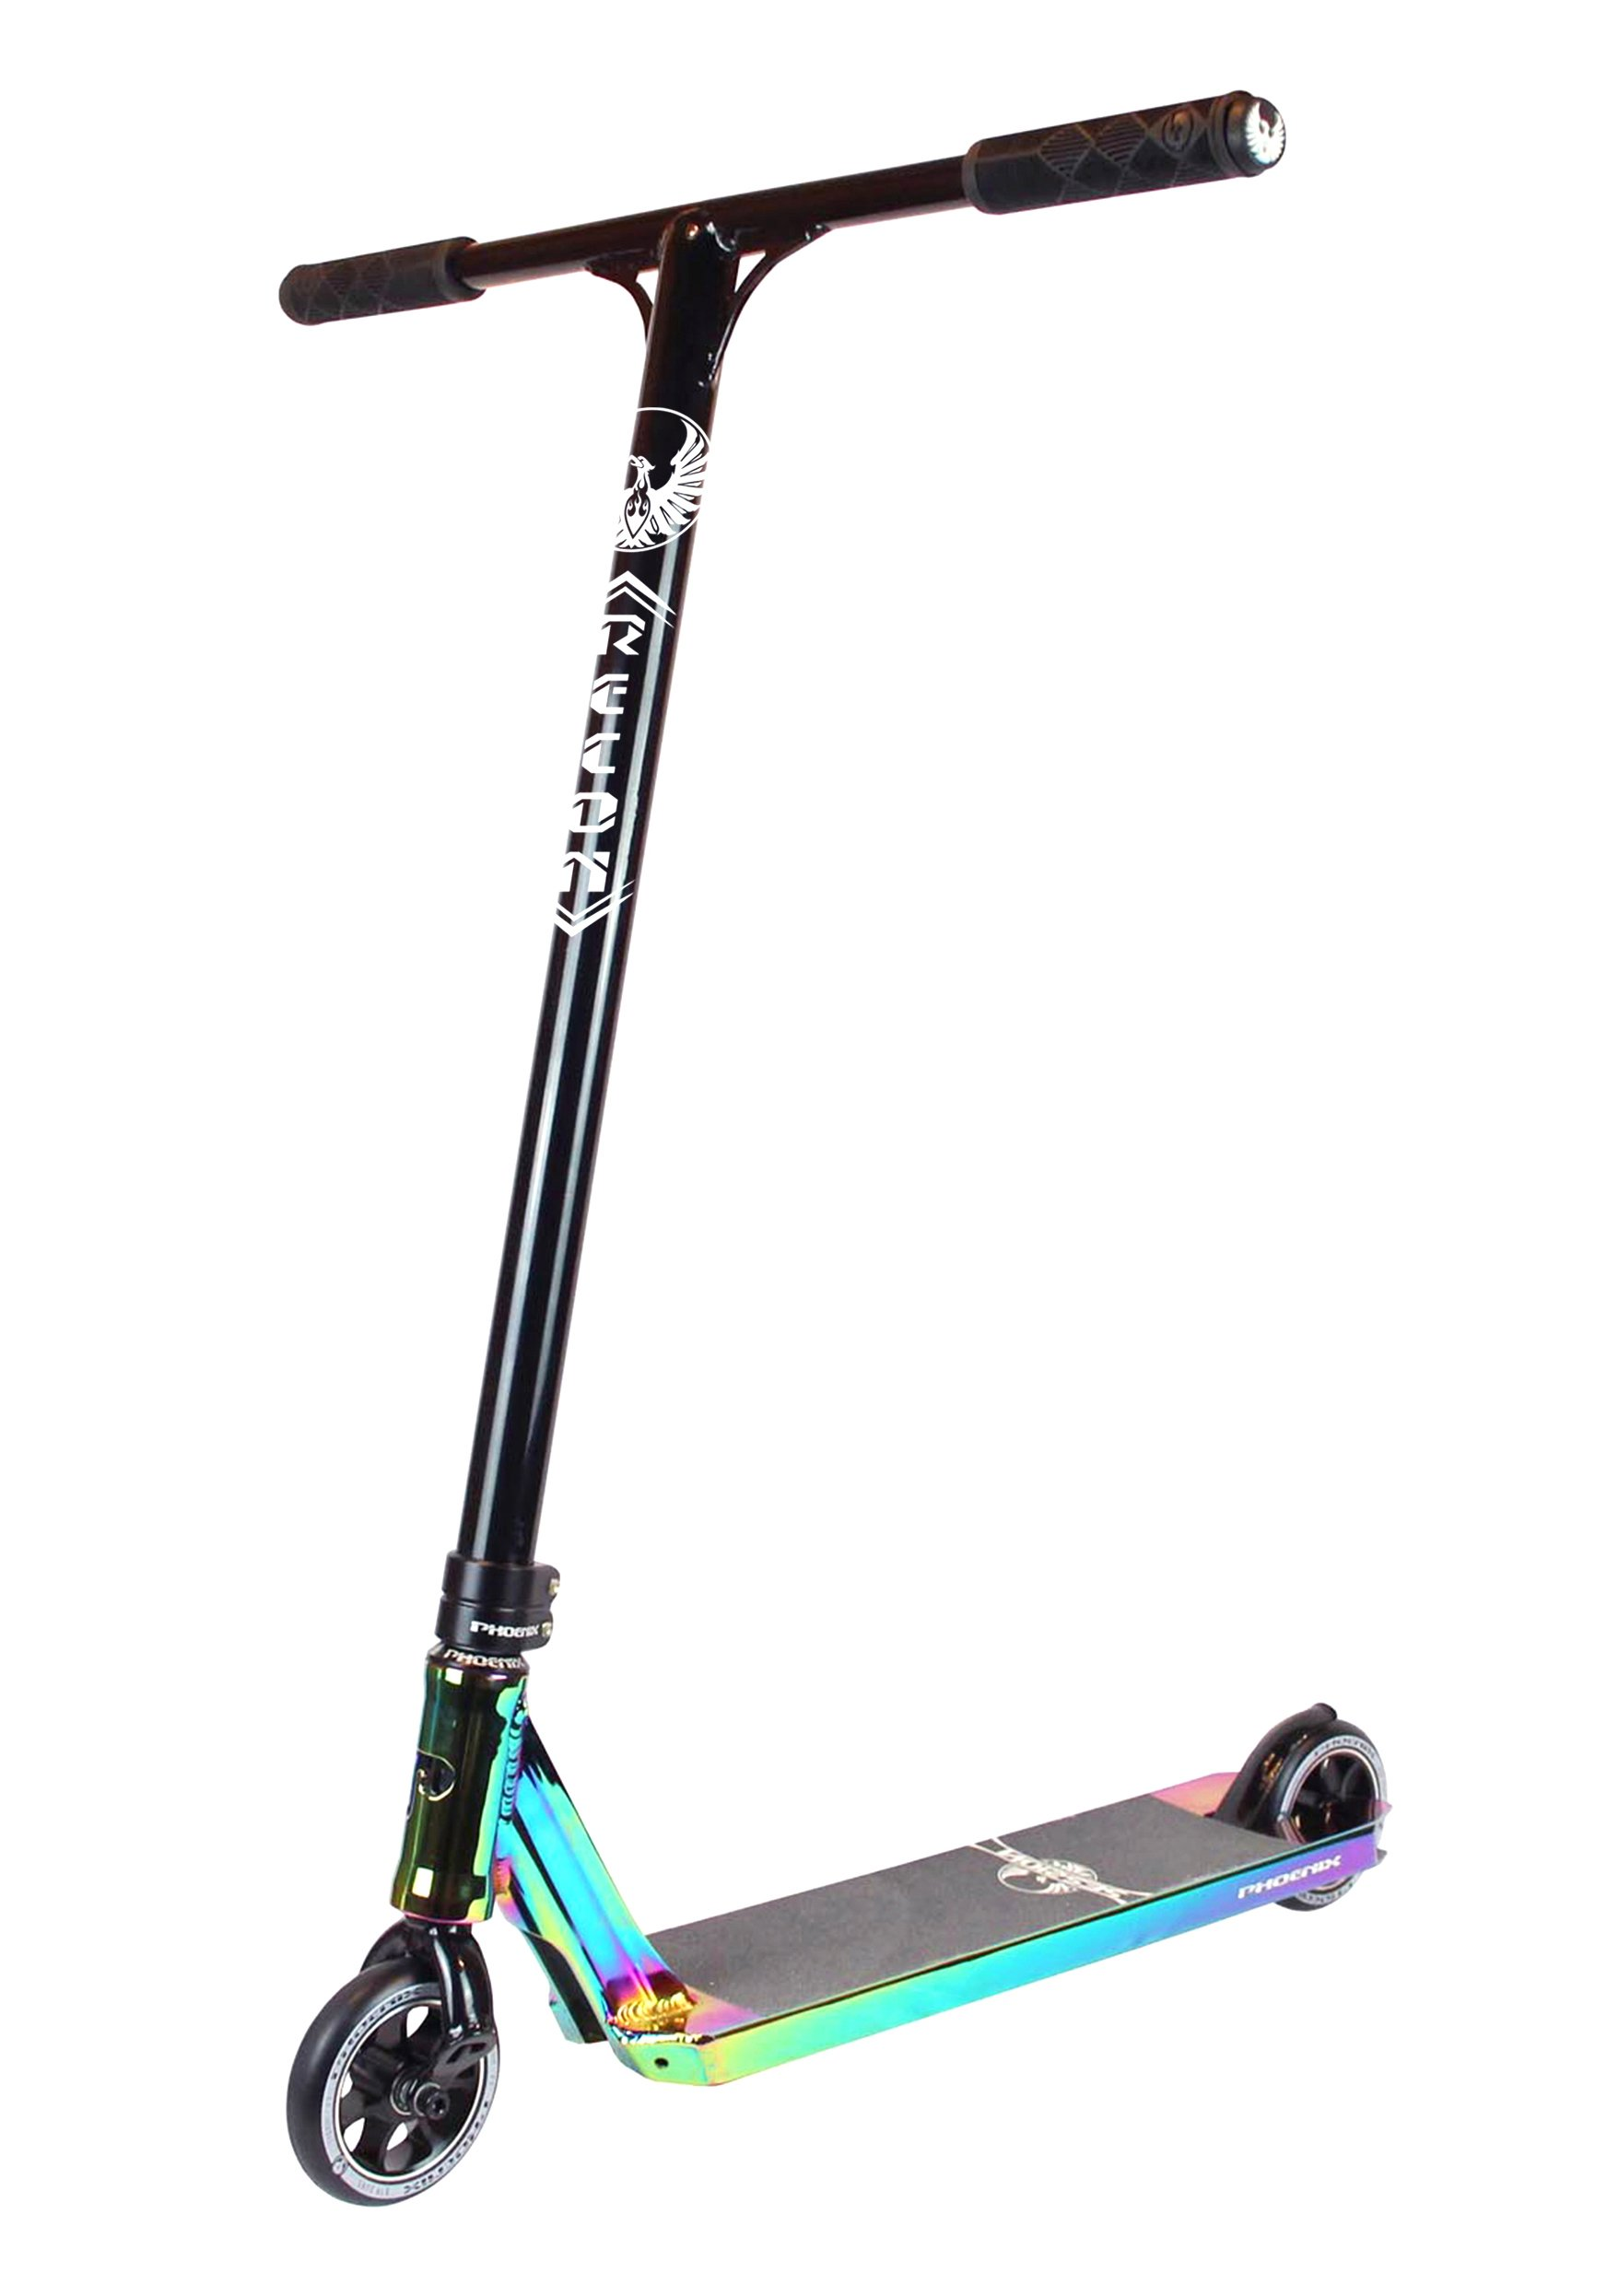 Phoenix Session Pro Scooter (Neo Chrome) by Phoenix Pro Scooters